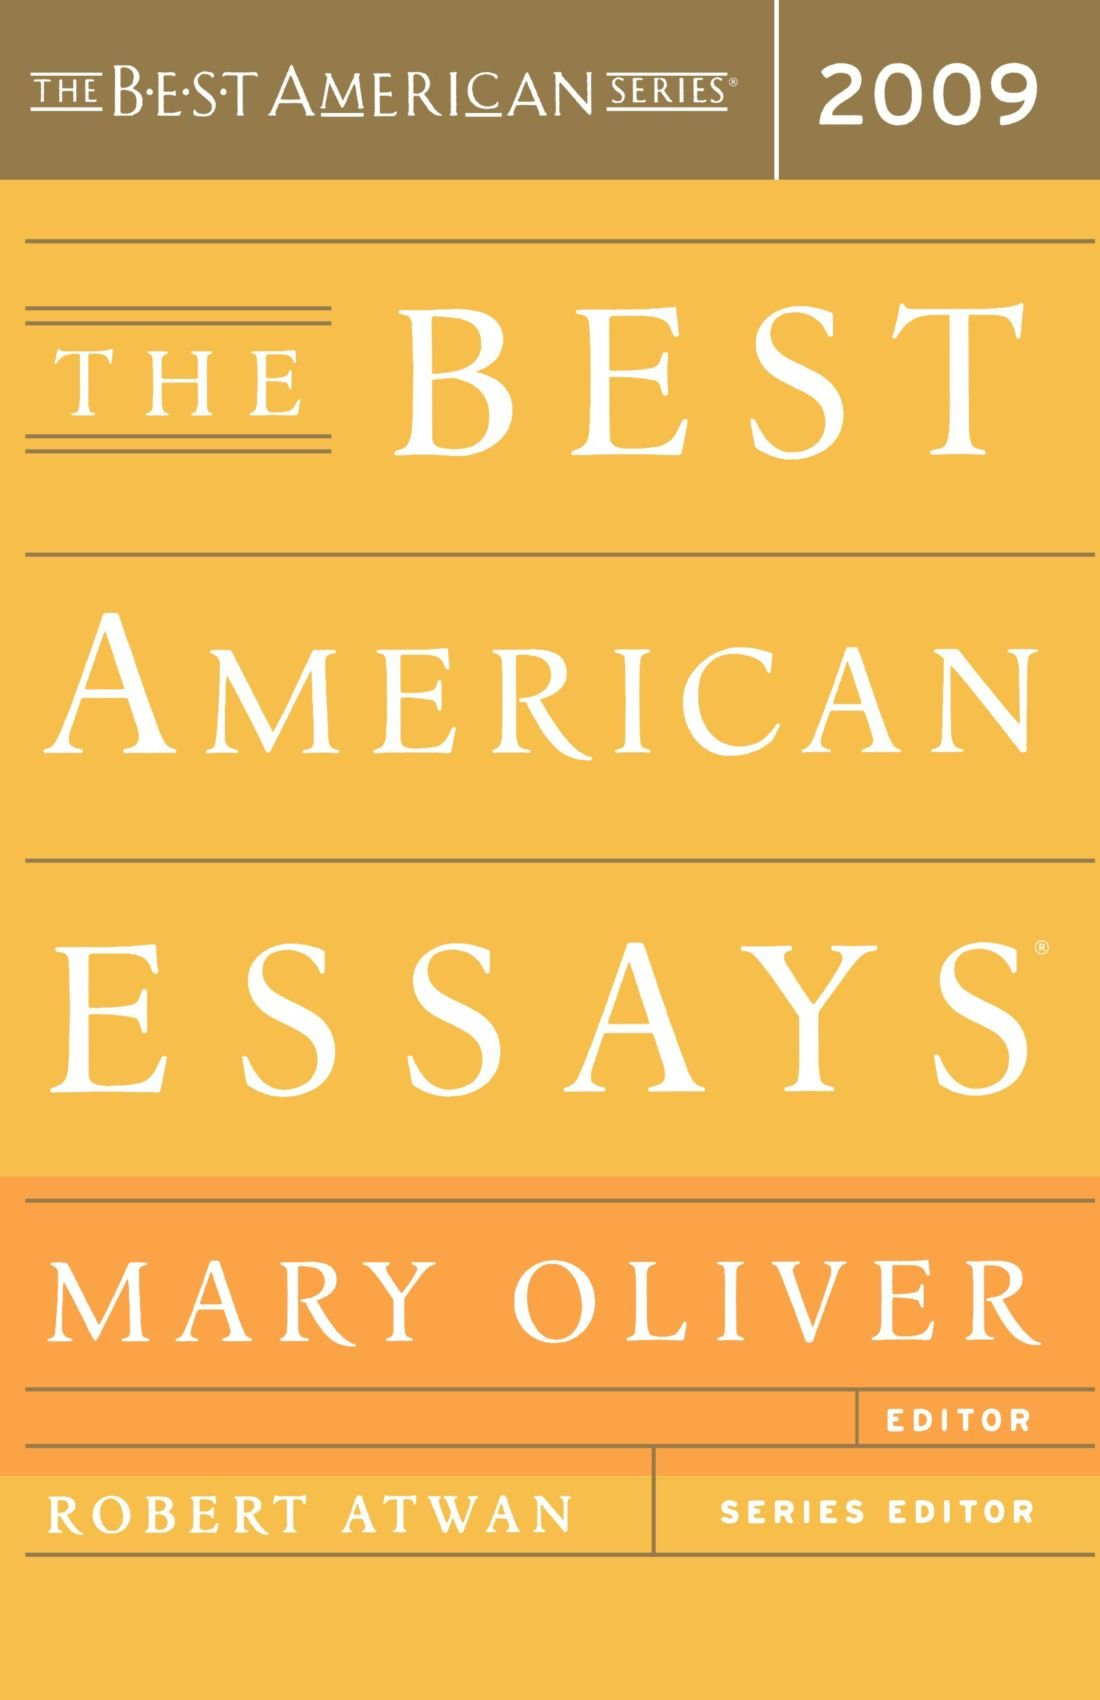 008 617qb5slhfl Essay Example The Best American Wonderful Essays Of Century Table Contents 2013 Pdf Download Full